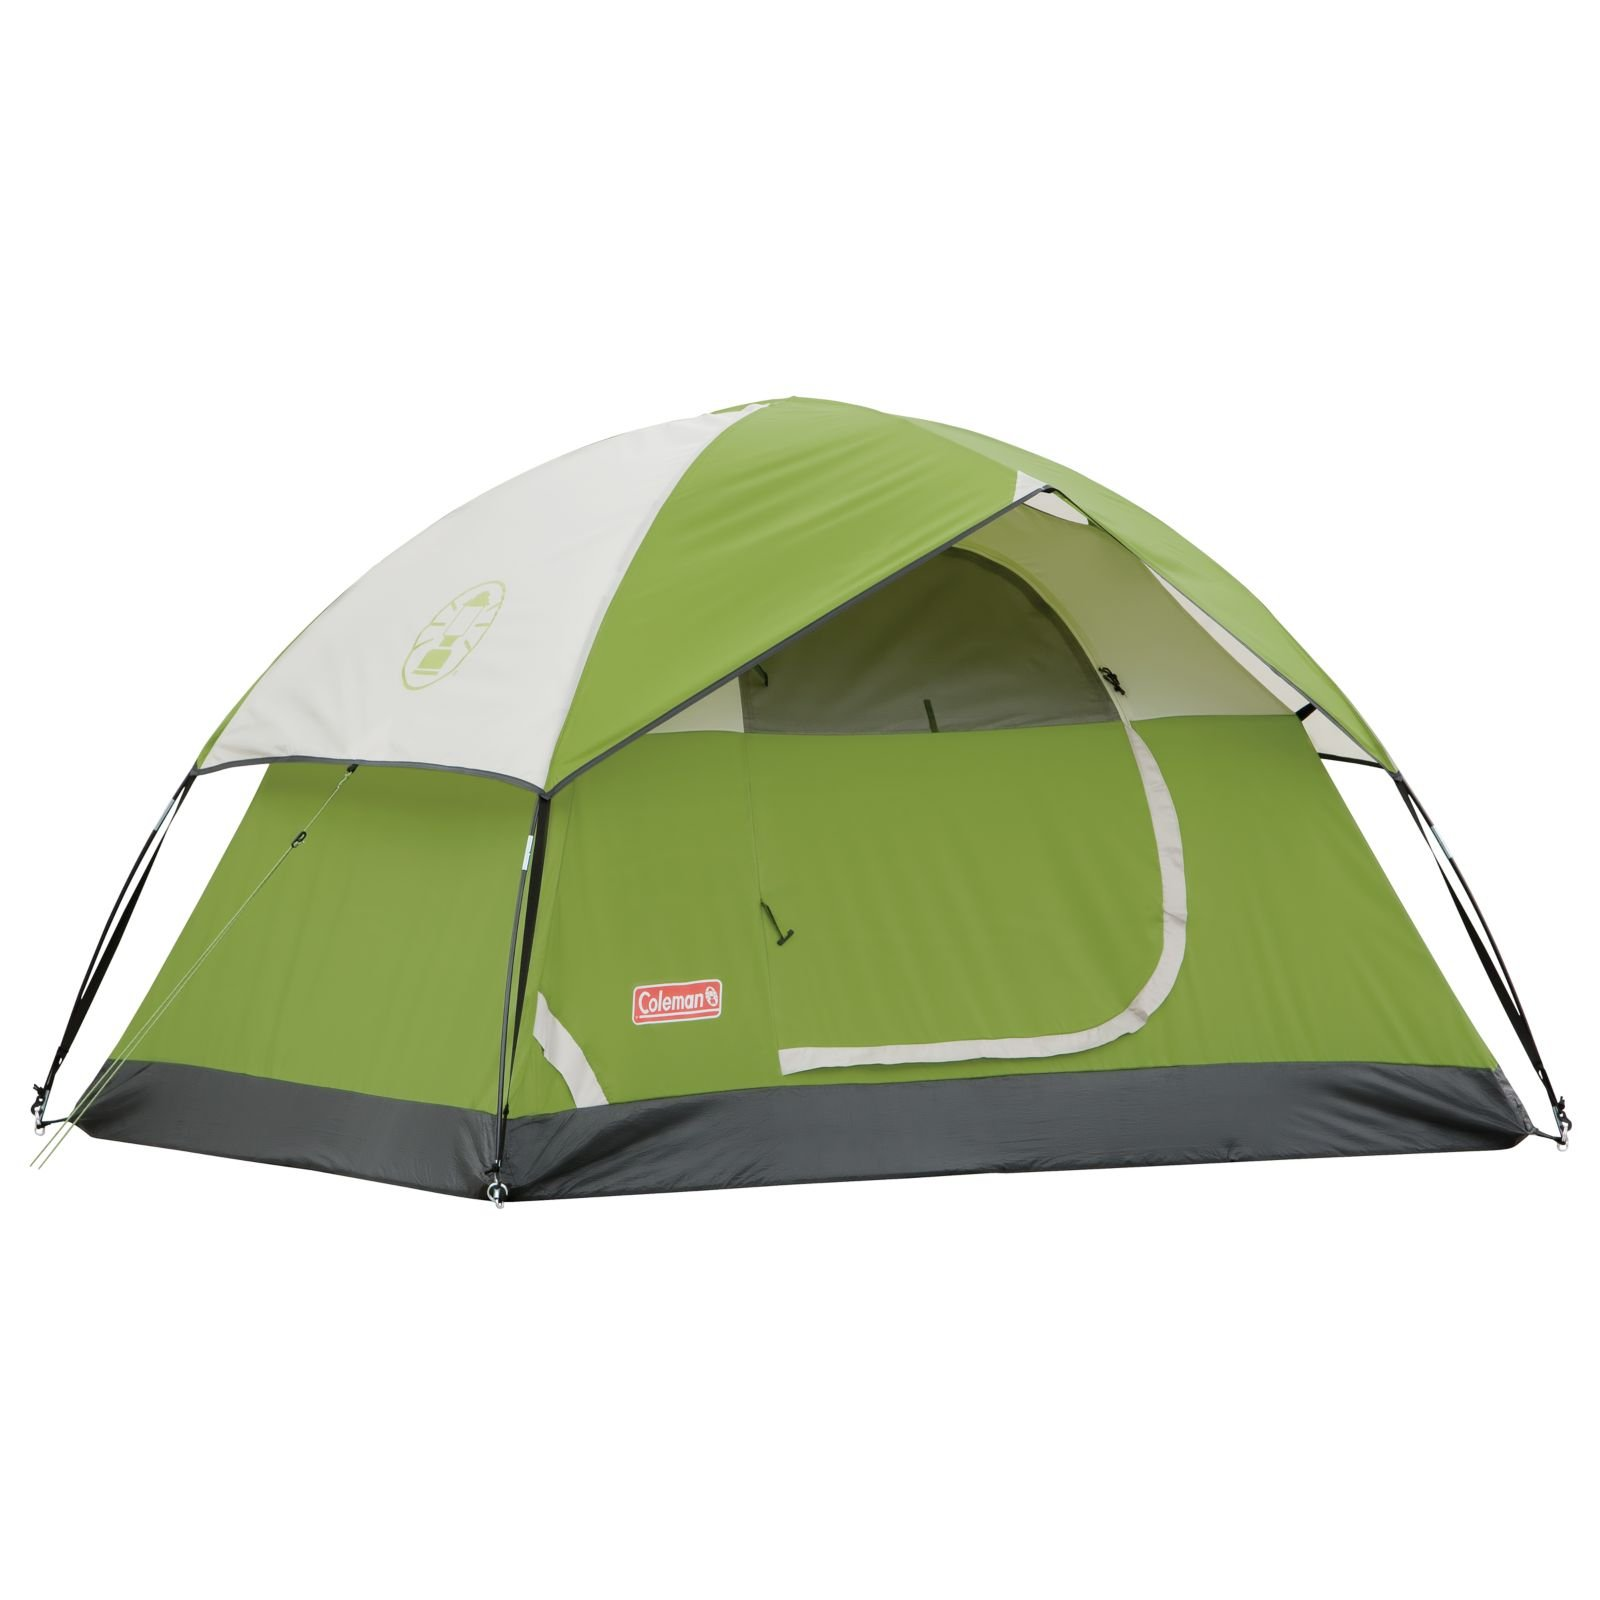 Coleman 2-Person Sundome Tent Green  sc 1 st  Amazon.com & Best Rated in Family Camping Tents u0026 Helpful Customer Reviews ...